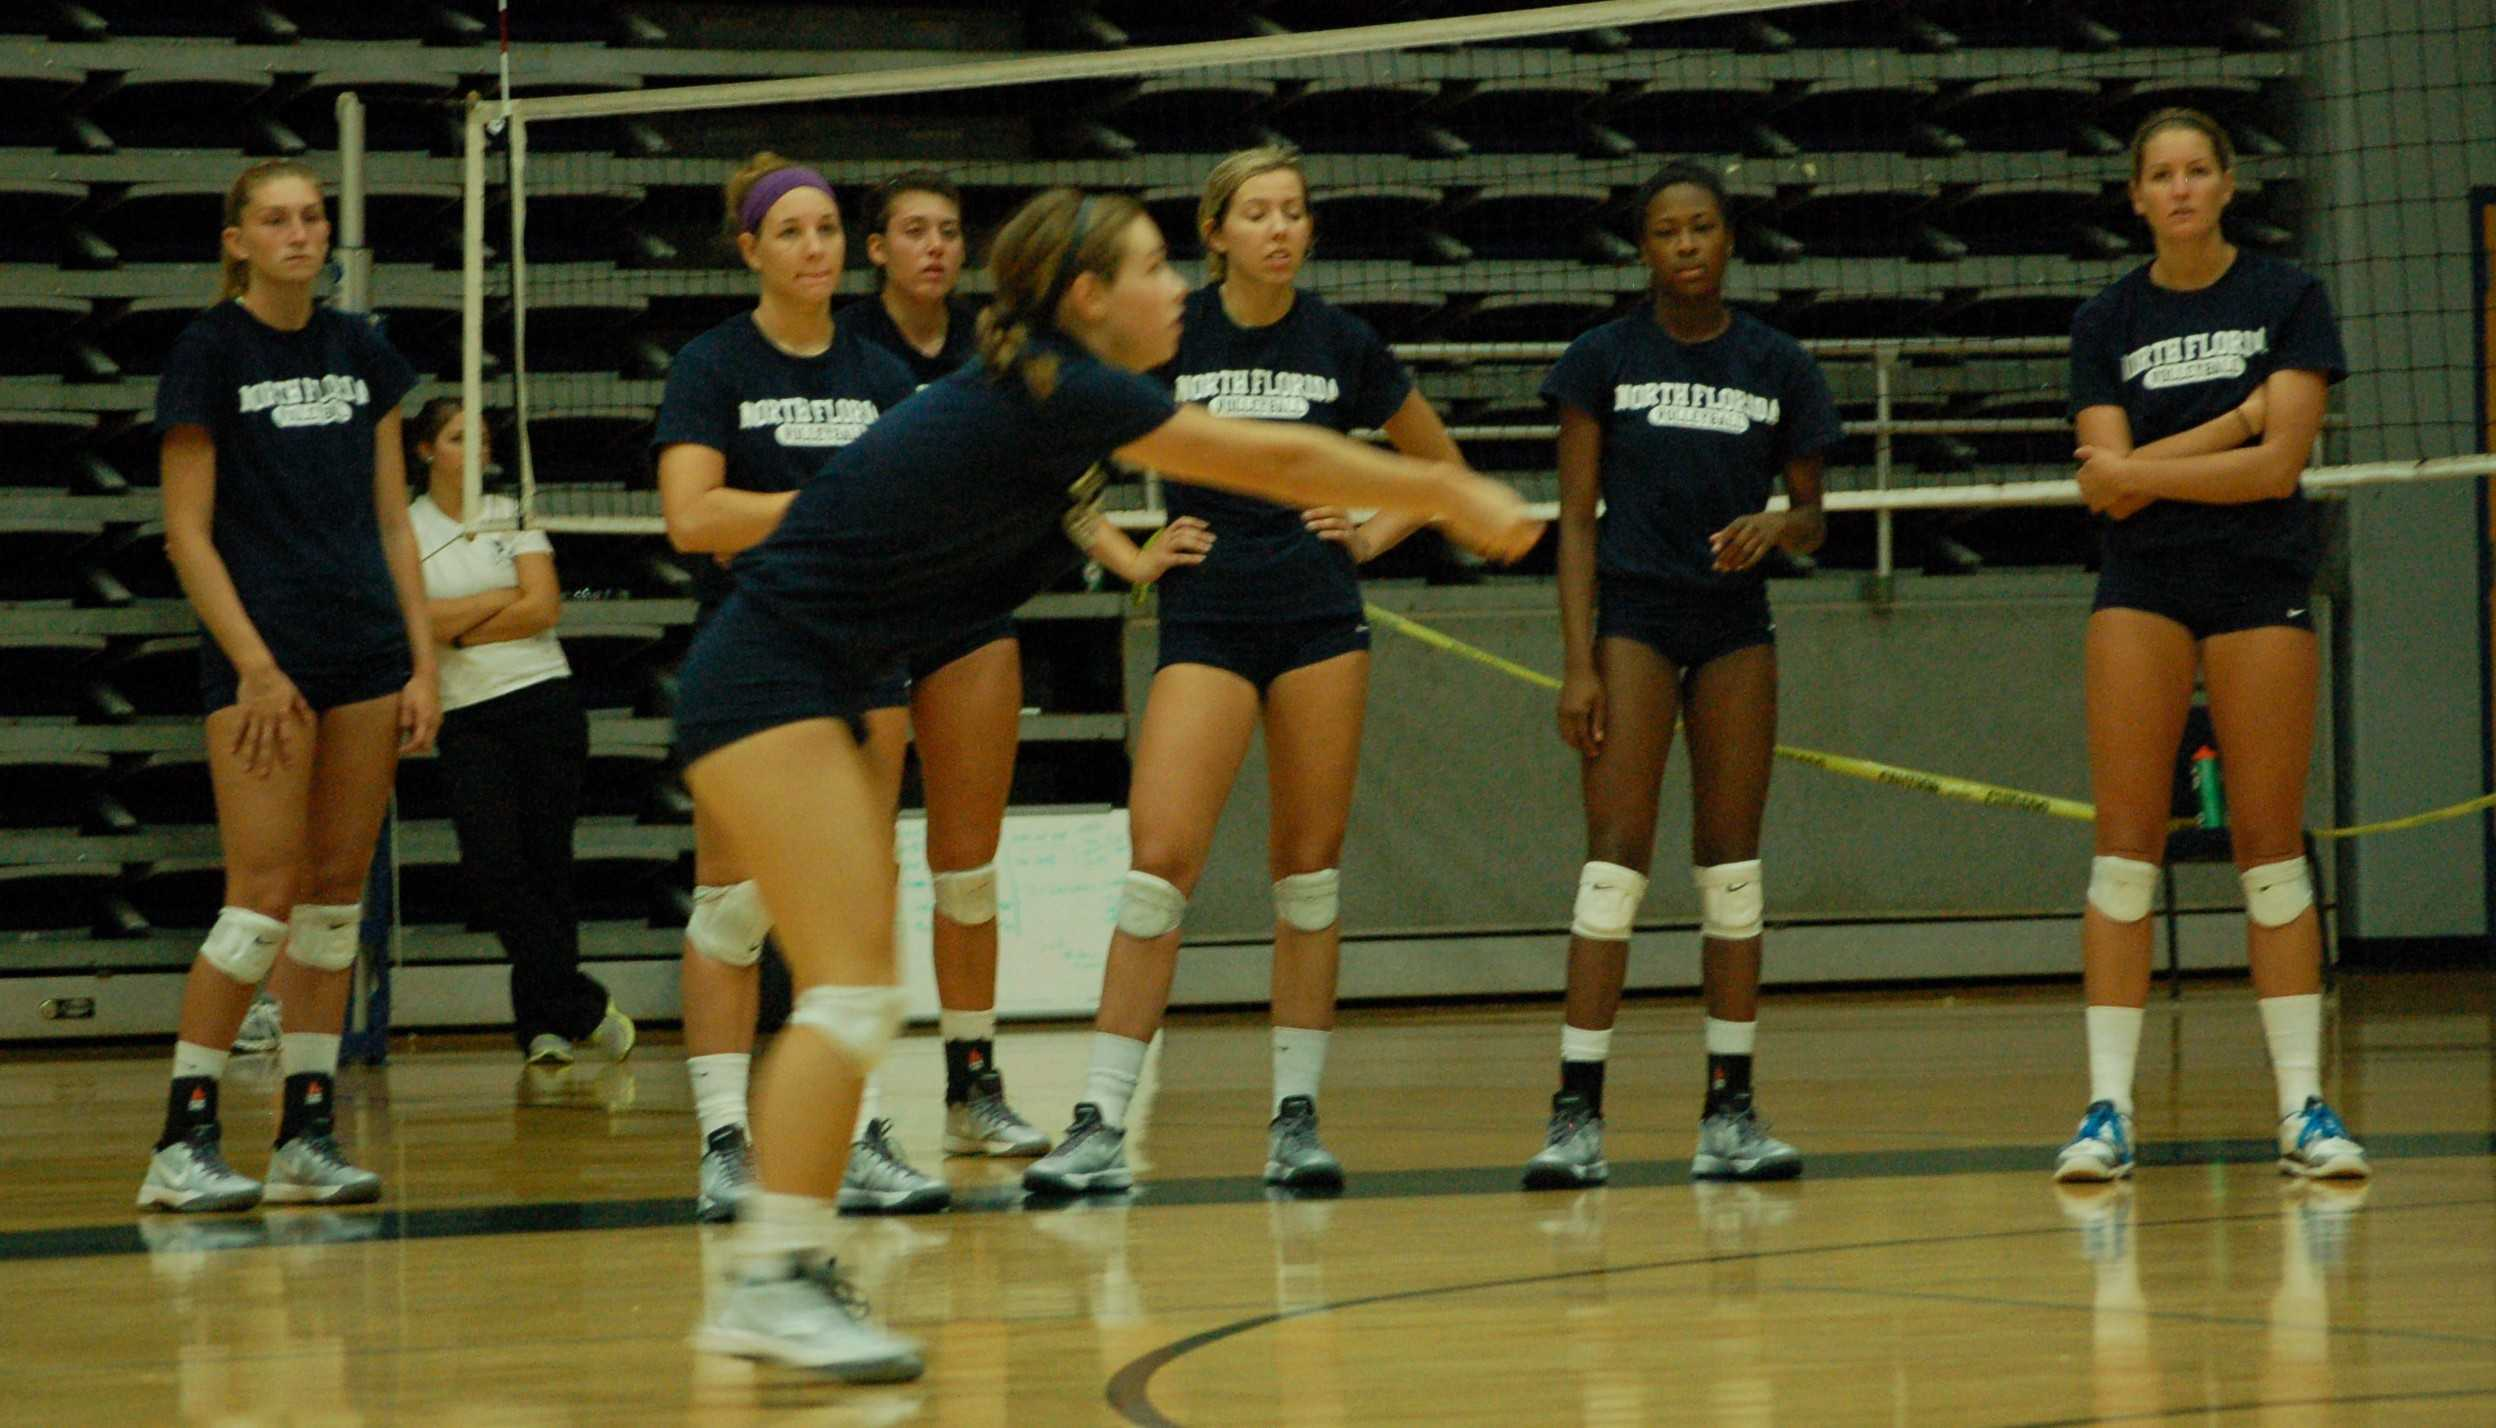 UNF volleyball during pre-season practice. (Photo credit: Travis Gibson)